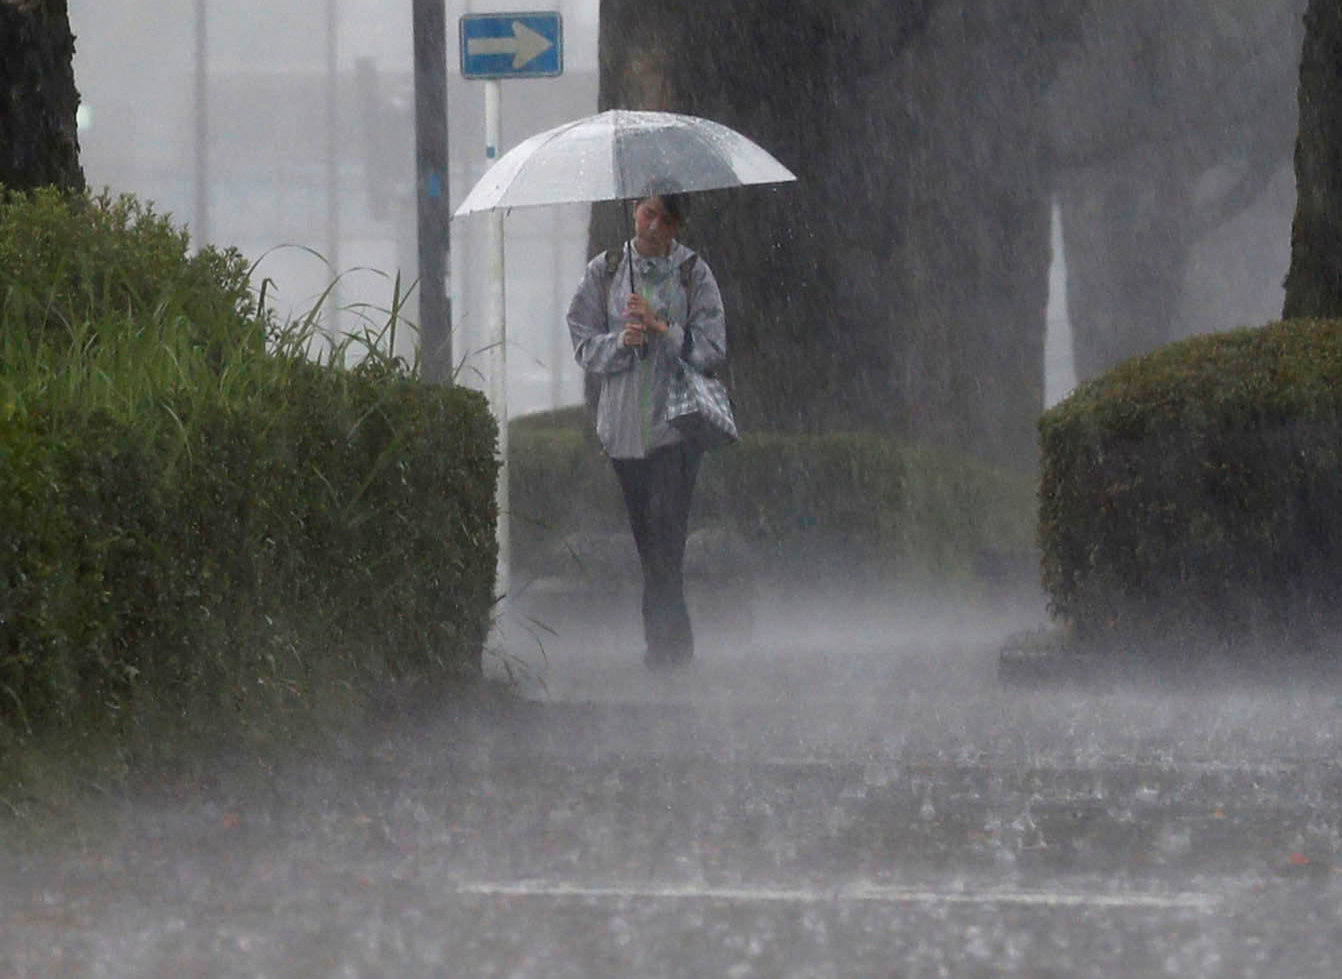 A pedestrian walks through heavy rain in Kirishima, Kagoshima Prefecture, southwestern Japan, July 3, 2019, in this photo taken by Kyodo. Mandatory credit Kyodo/via REUTERS ATTENTION EDITORS - THIS IMAGE WAS PROVIDED BY A THIRD PARTY. MANDATORY CREDIT. JAPAN OUT. NO COMMERCIAL OR EDITORIAL SALES IN JAPAN. THIS IMAGE WAS PROCESSED BY REUTERS TO ENHANCE QUALITY, AN UNPROCESSED VERSION HAS BEEN PROVIDED SEPARATELY.